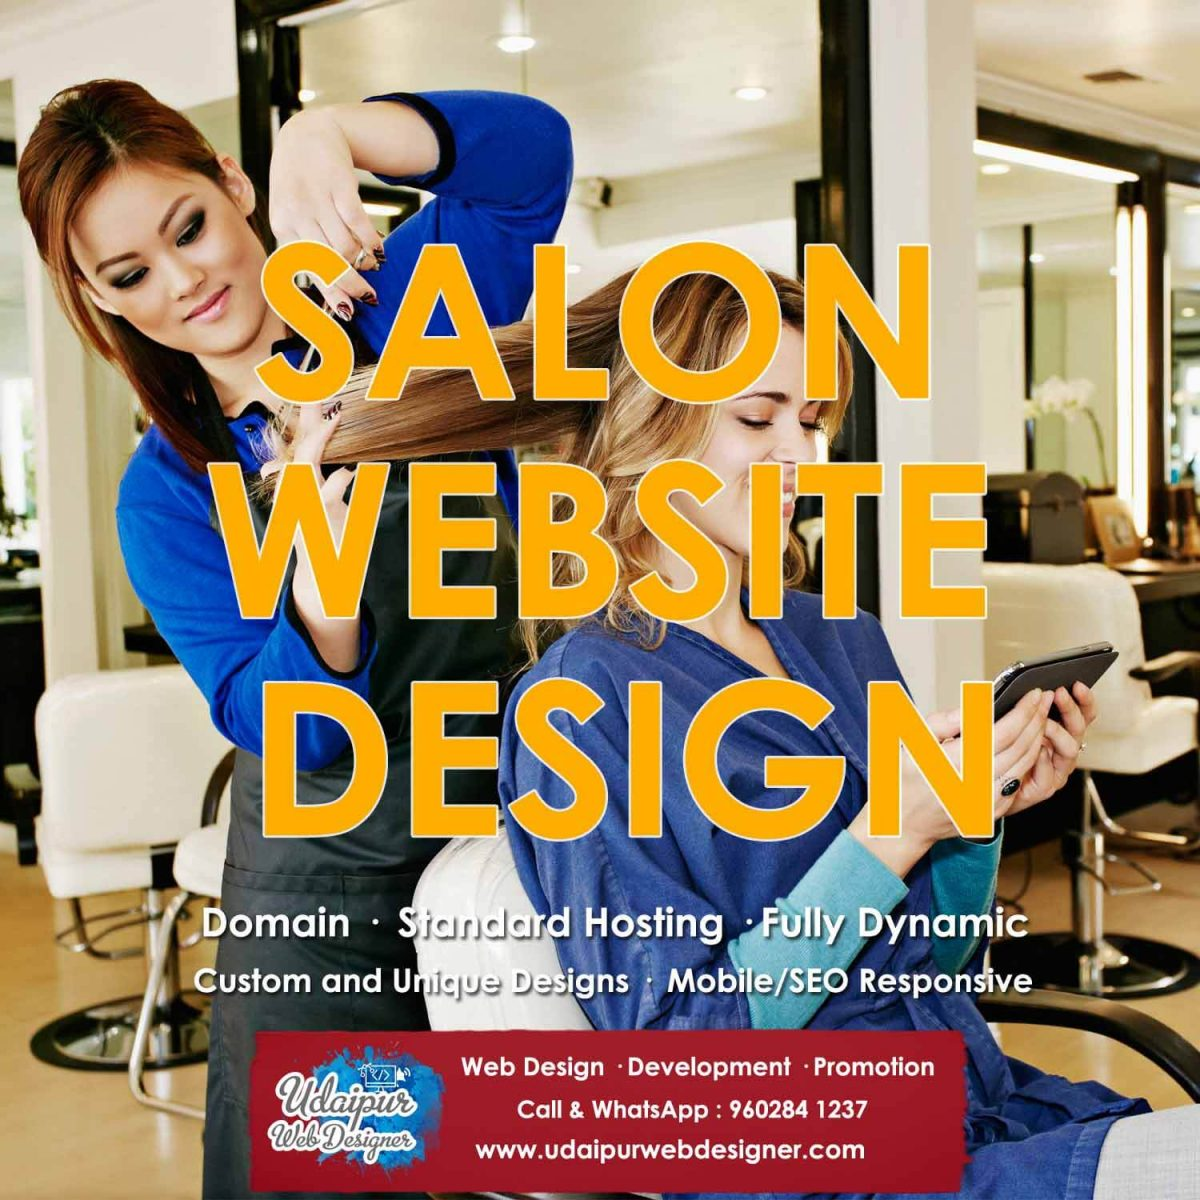 Salon Website Designer